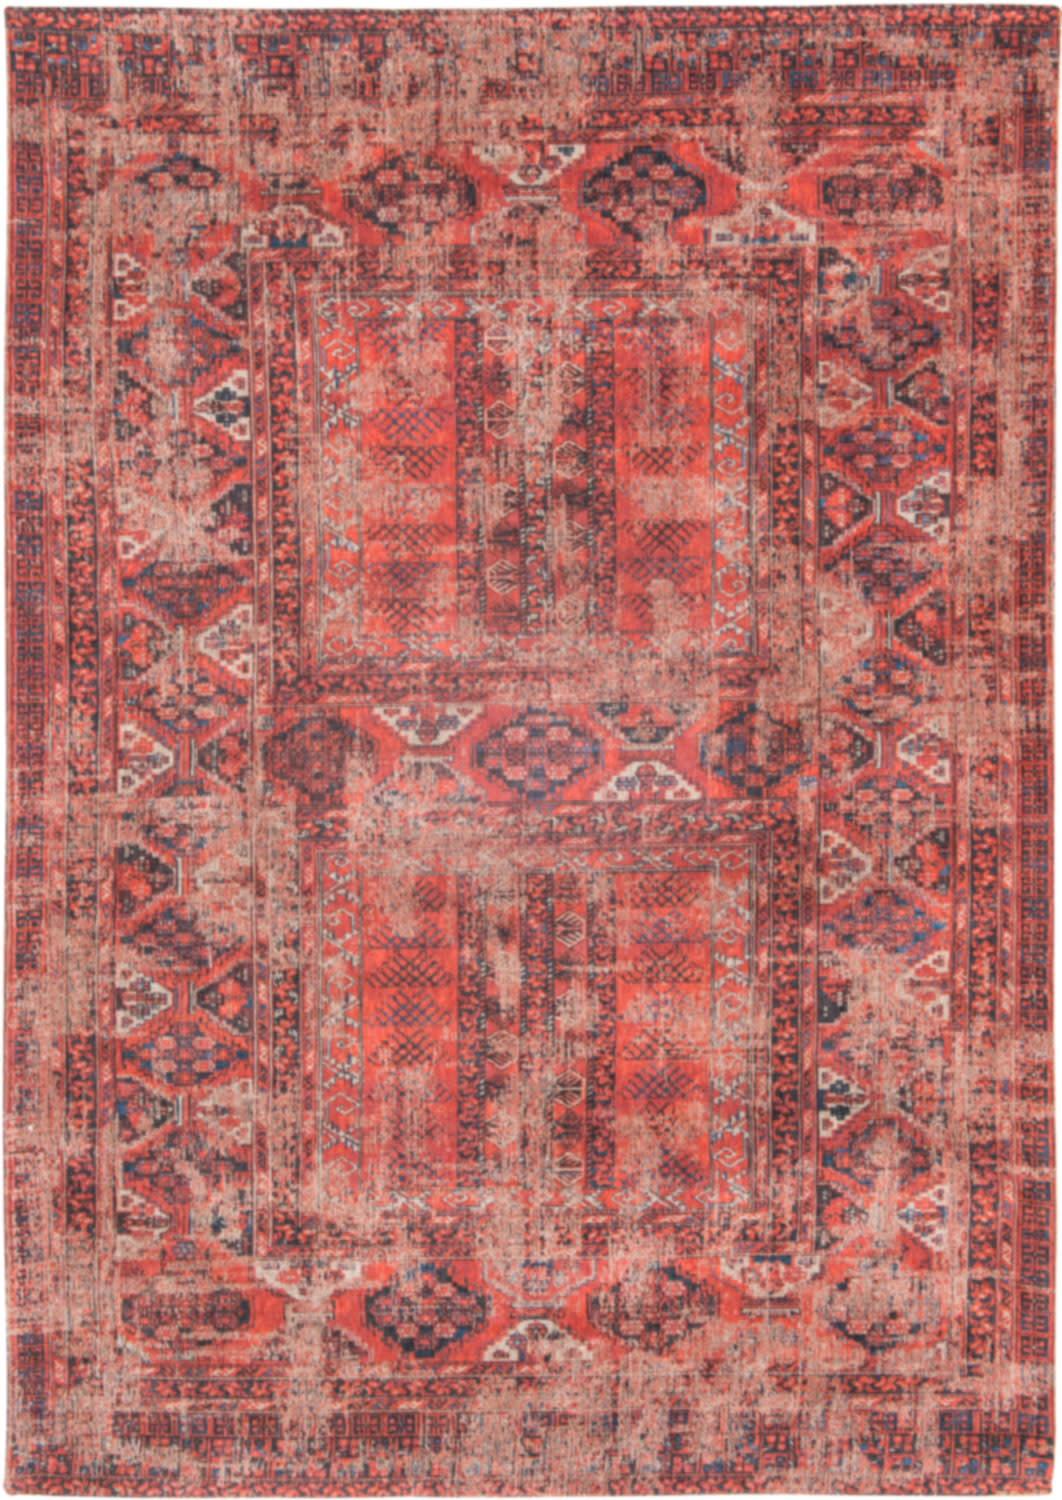 Gebloemd Tapijt Louis De Poortere Rugs Antique Bakhtiari Janissary Multi Tapijt Antiquarian Collection